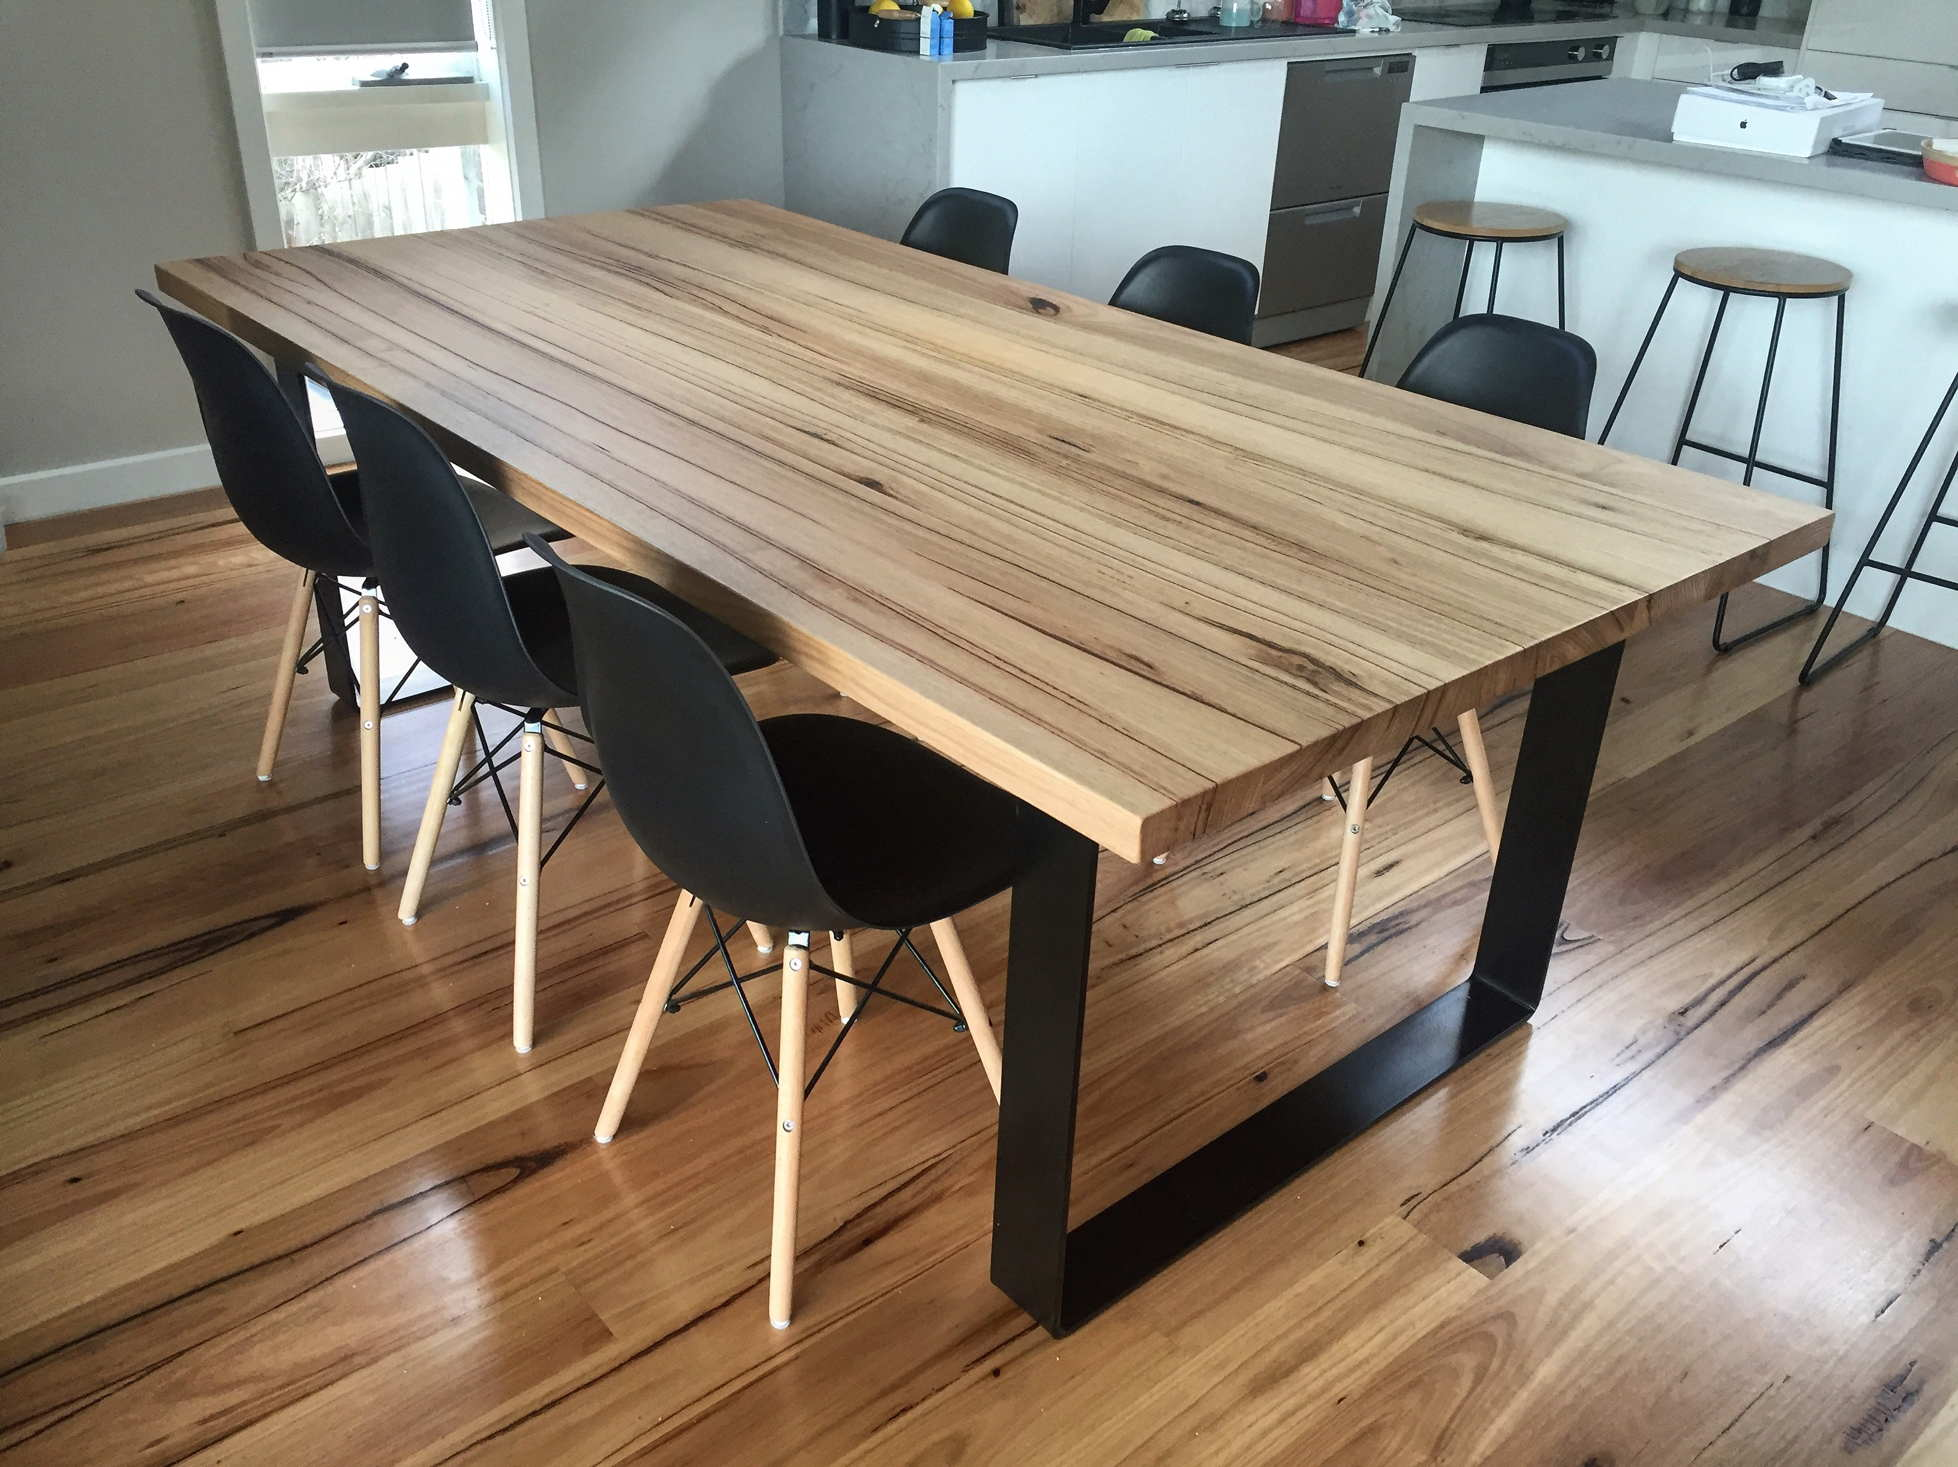 Victorian Ash Dining Table J R Bespoke Designs